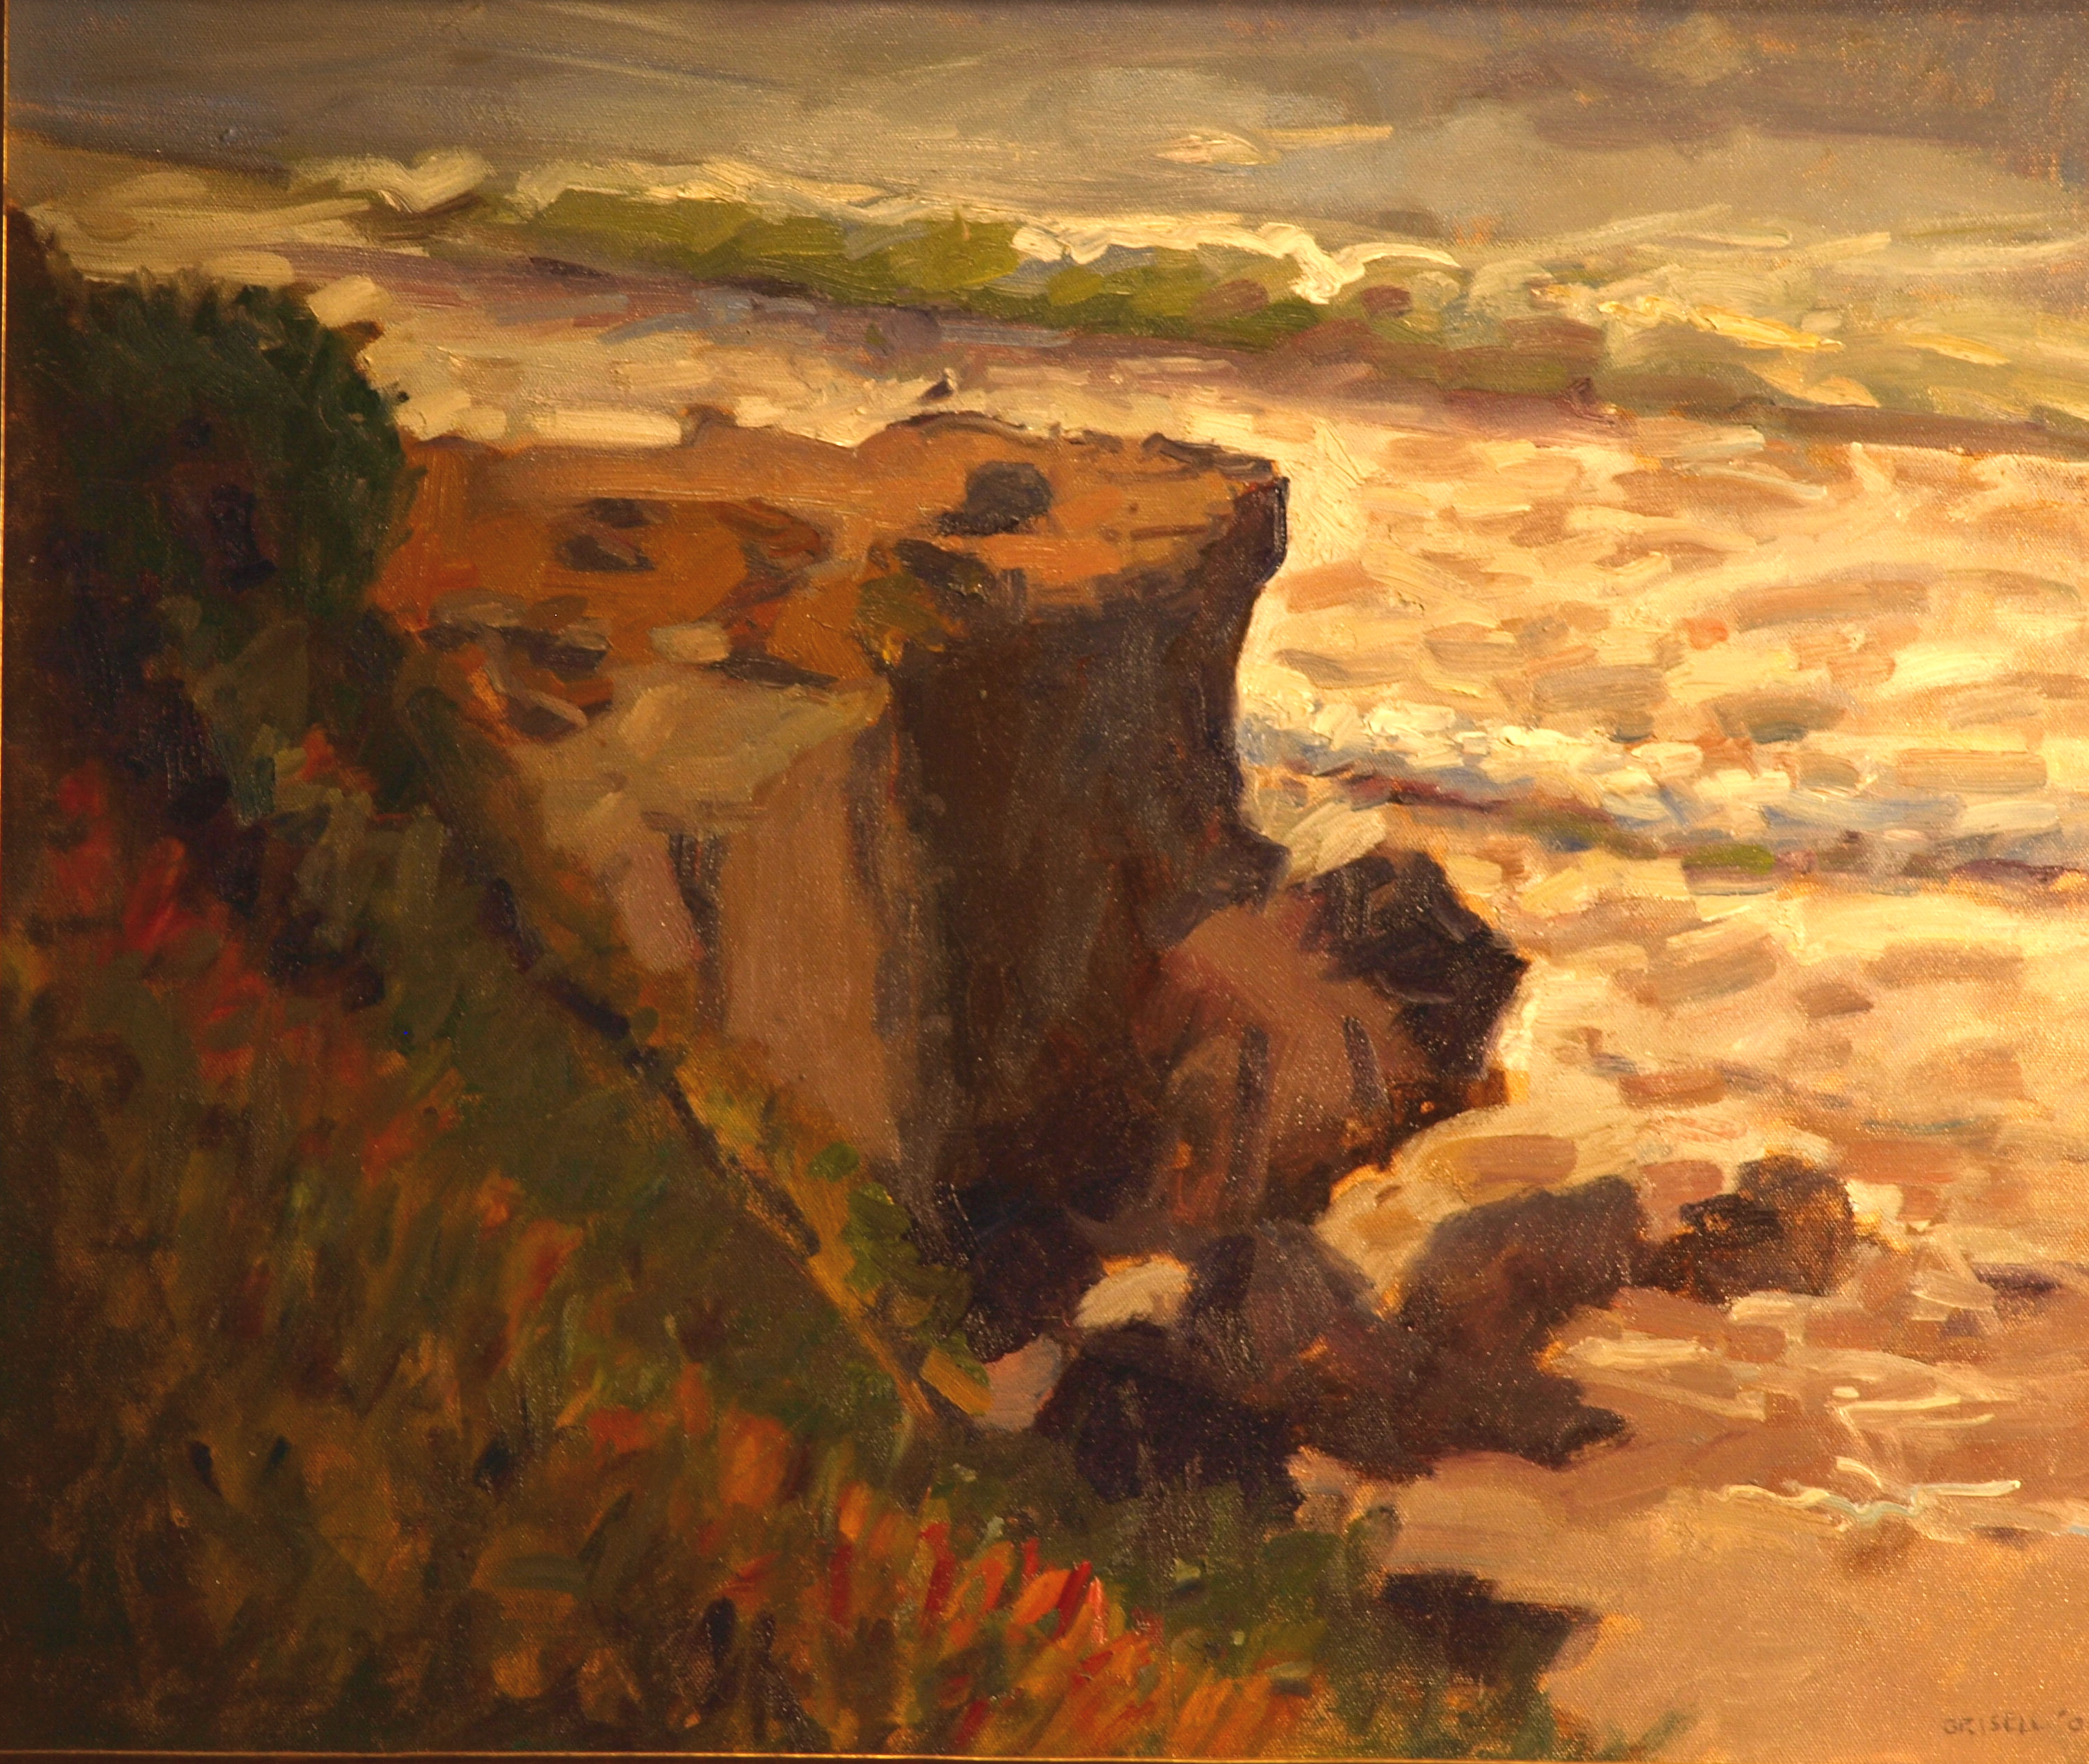 Cliff - Santa Cruz, Oil on Canvas, 20 x 24 Inches, by Susan Grisell, $650